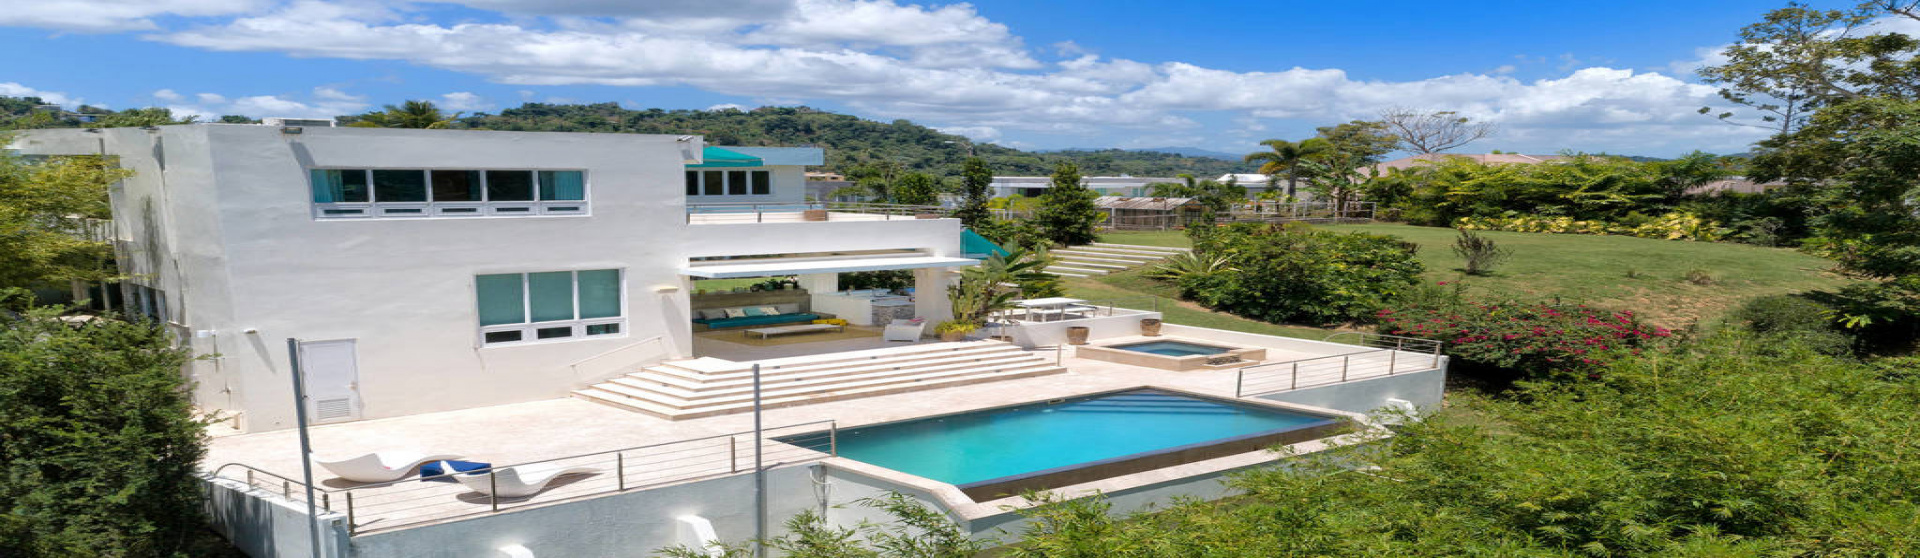 Guaynabo, Guaynabo Municipio, 4 Bedrooms Bedrooms, ,6 BathroomsBathrooms,Apartment,For Sale,Guaynabo,18757